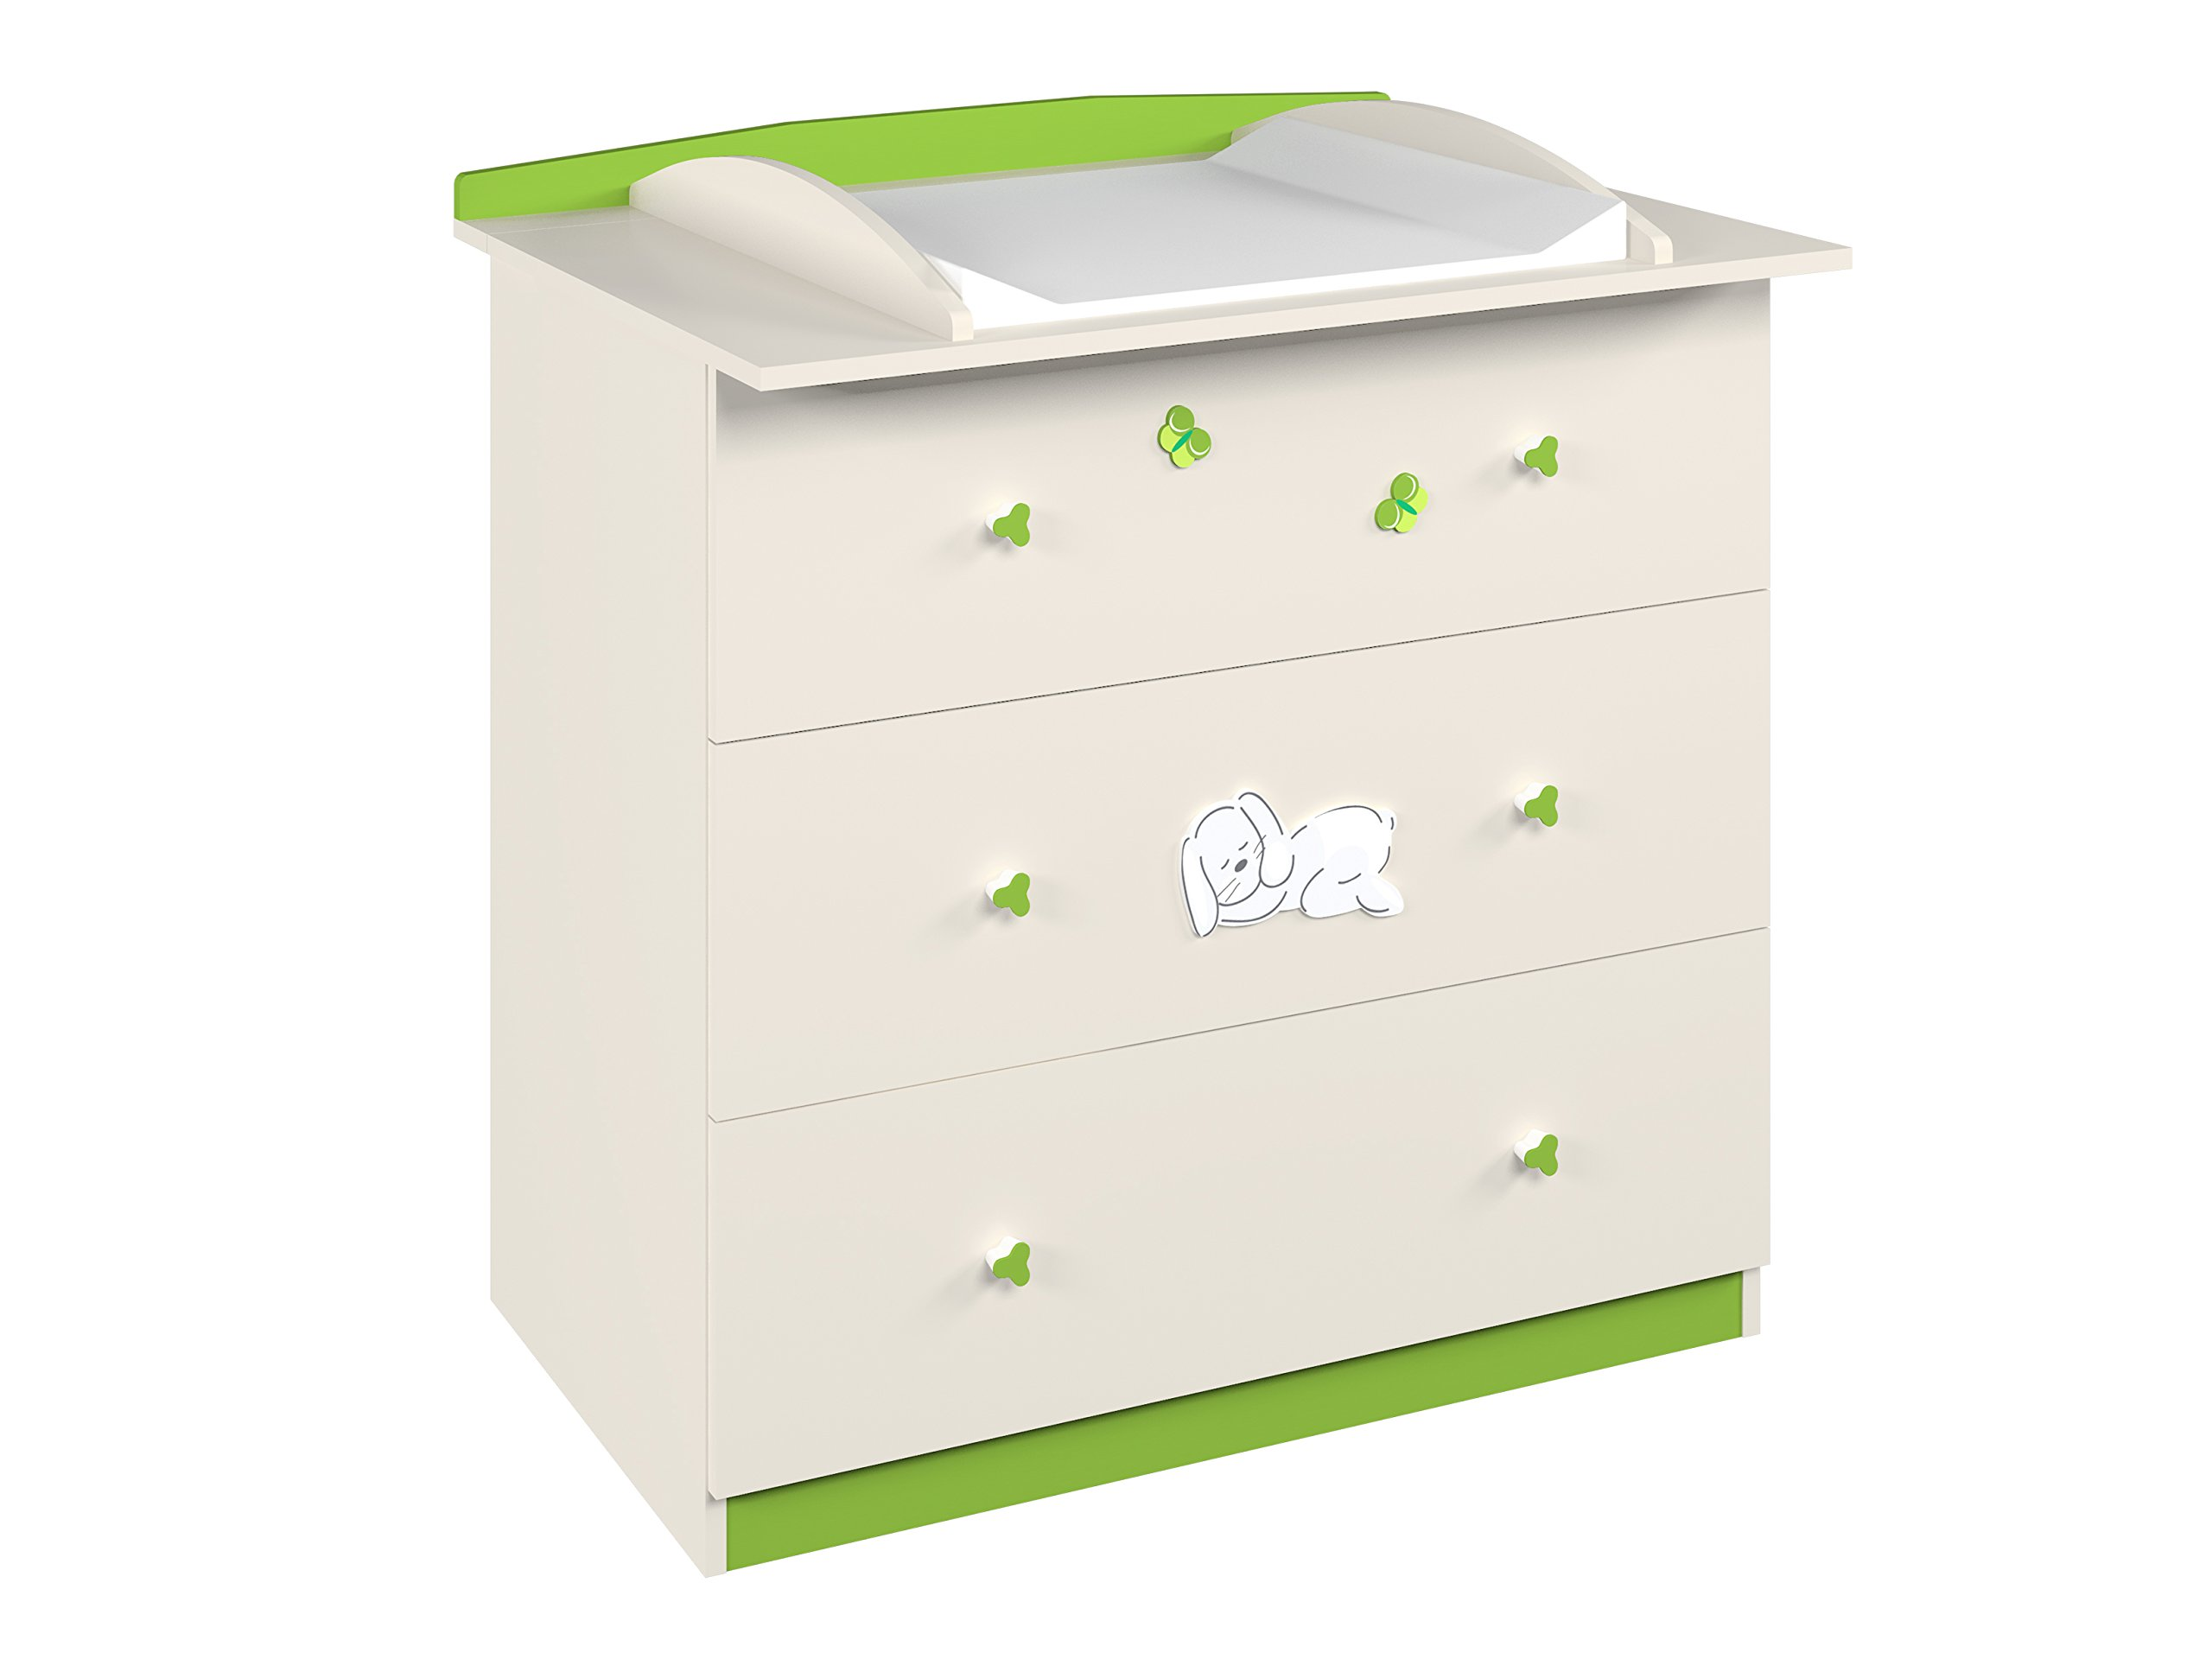 Polini Kids 0001523.45 Bunny 3190 Drawer Unit, Beige-Green Polini Kids Perfect solution for storing babies belongings Small ergonomic handles Comes in variety of colours 1